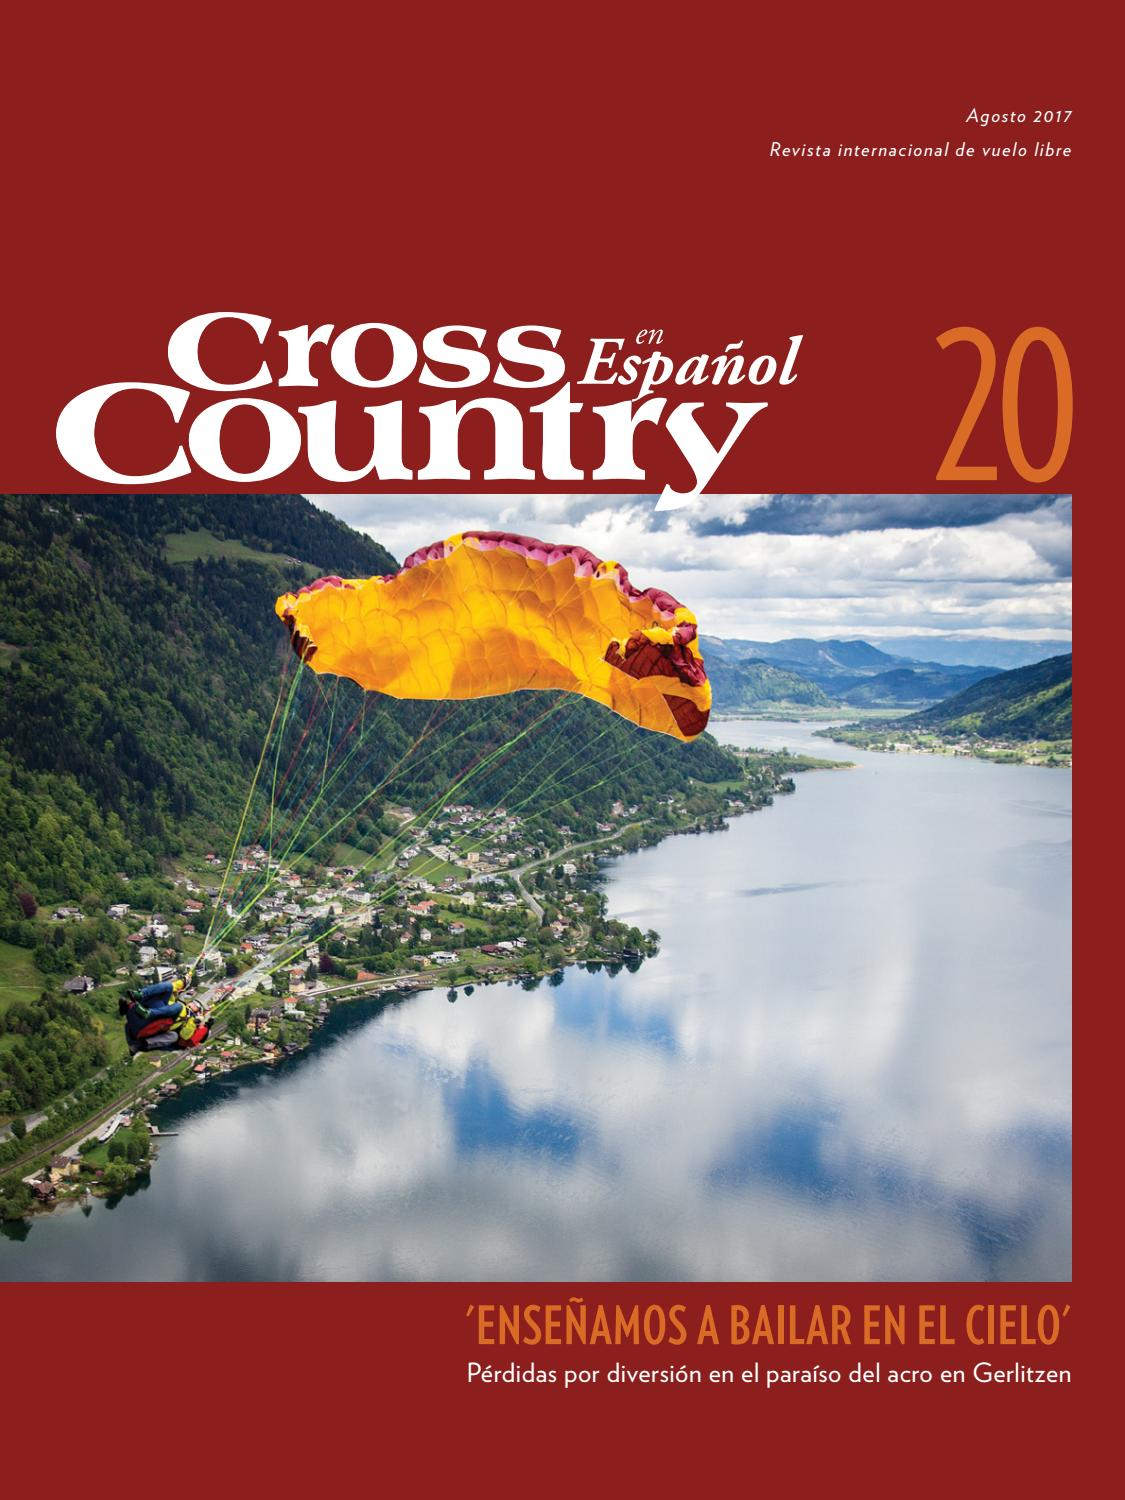 Cross country en Español 20 by Cross Country Magazine - issuu 3134b2186a59a